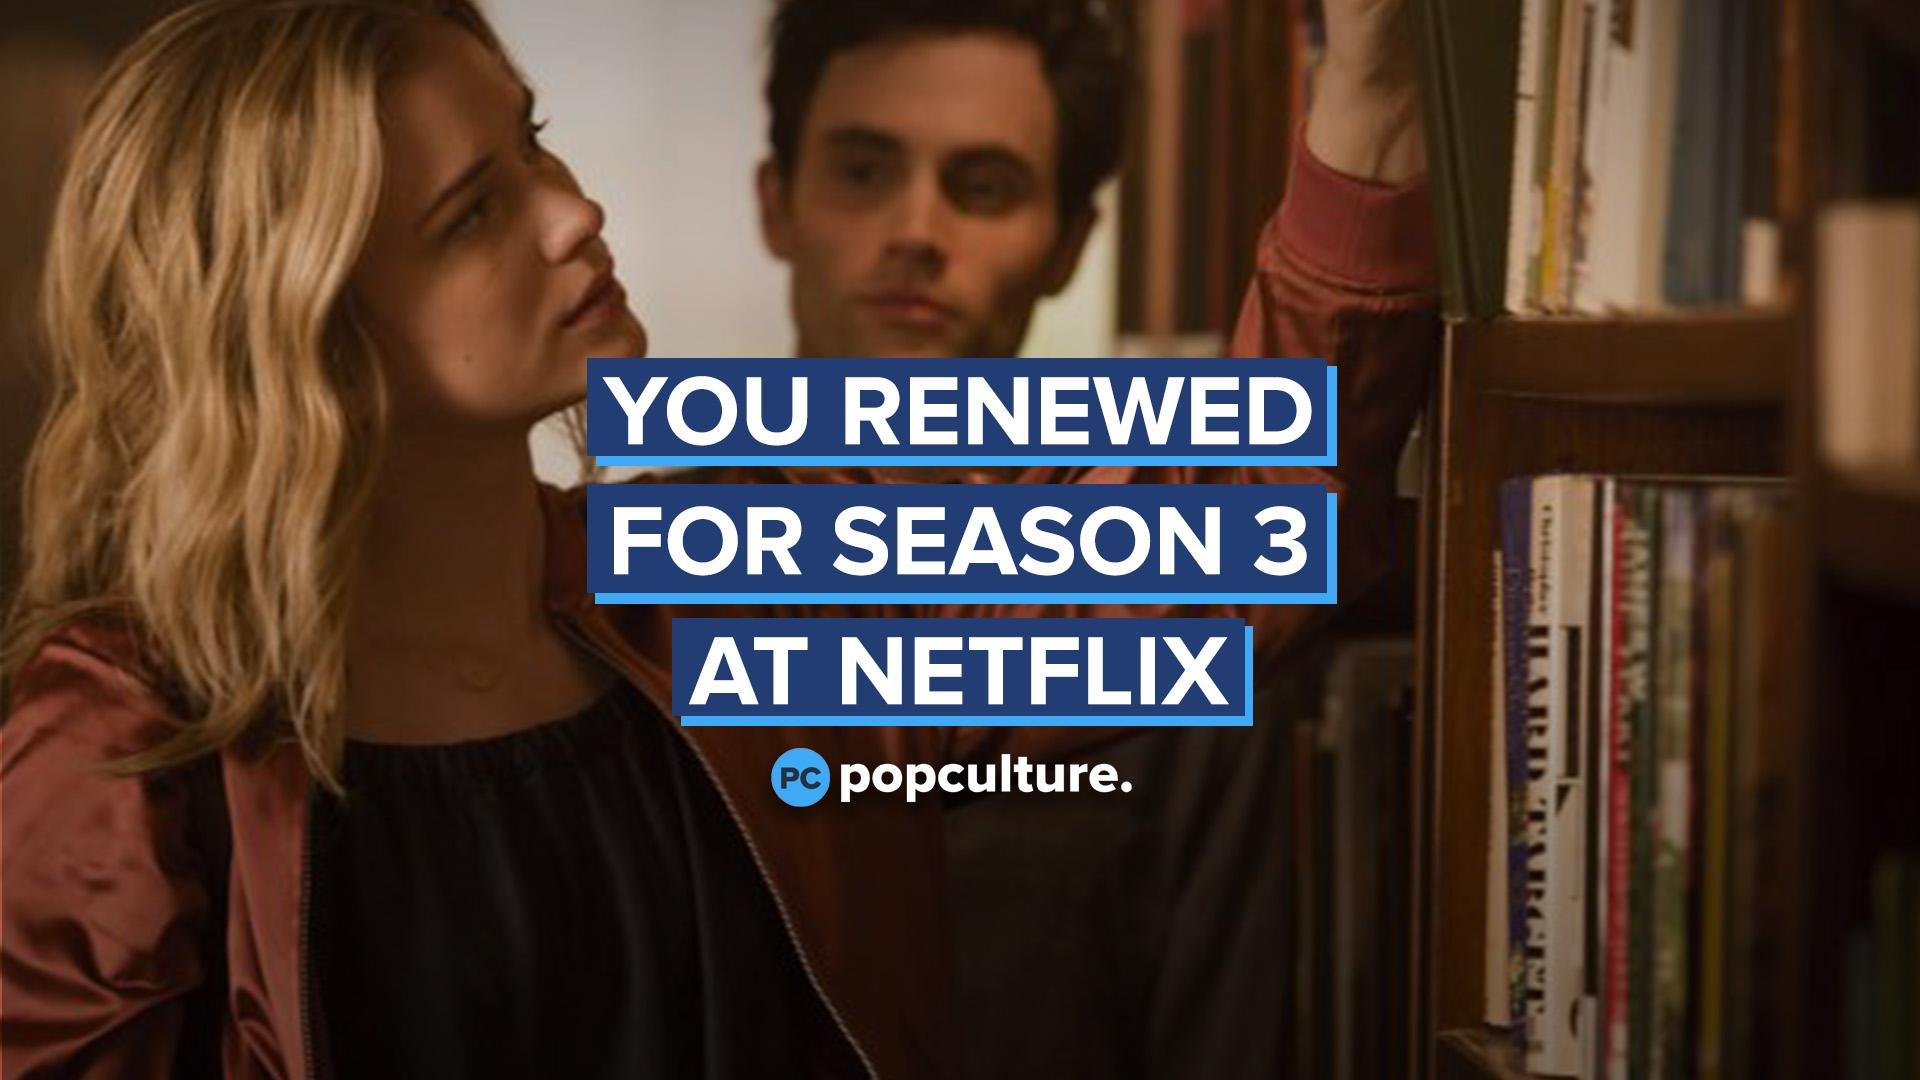 YOU Renewed for Season 3 at Netflix screen capture